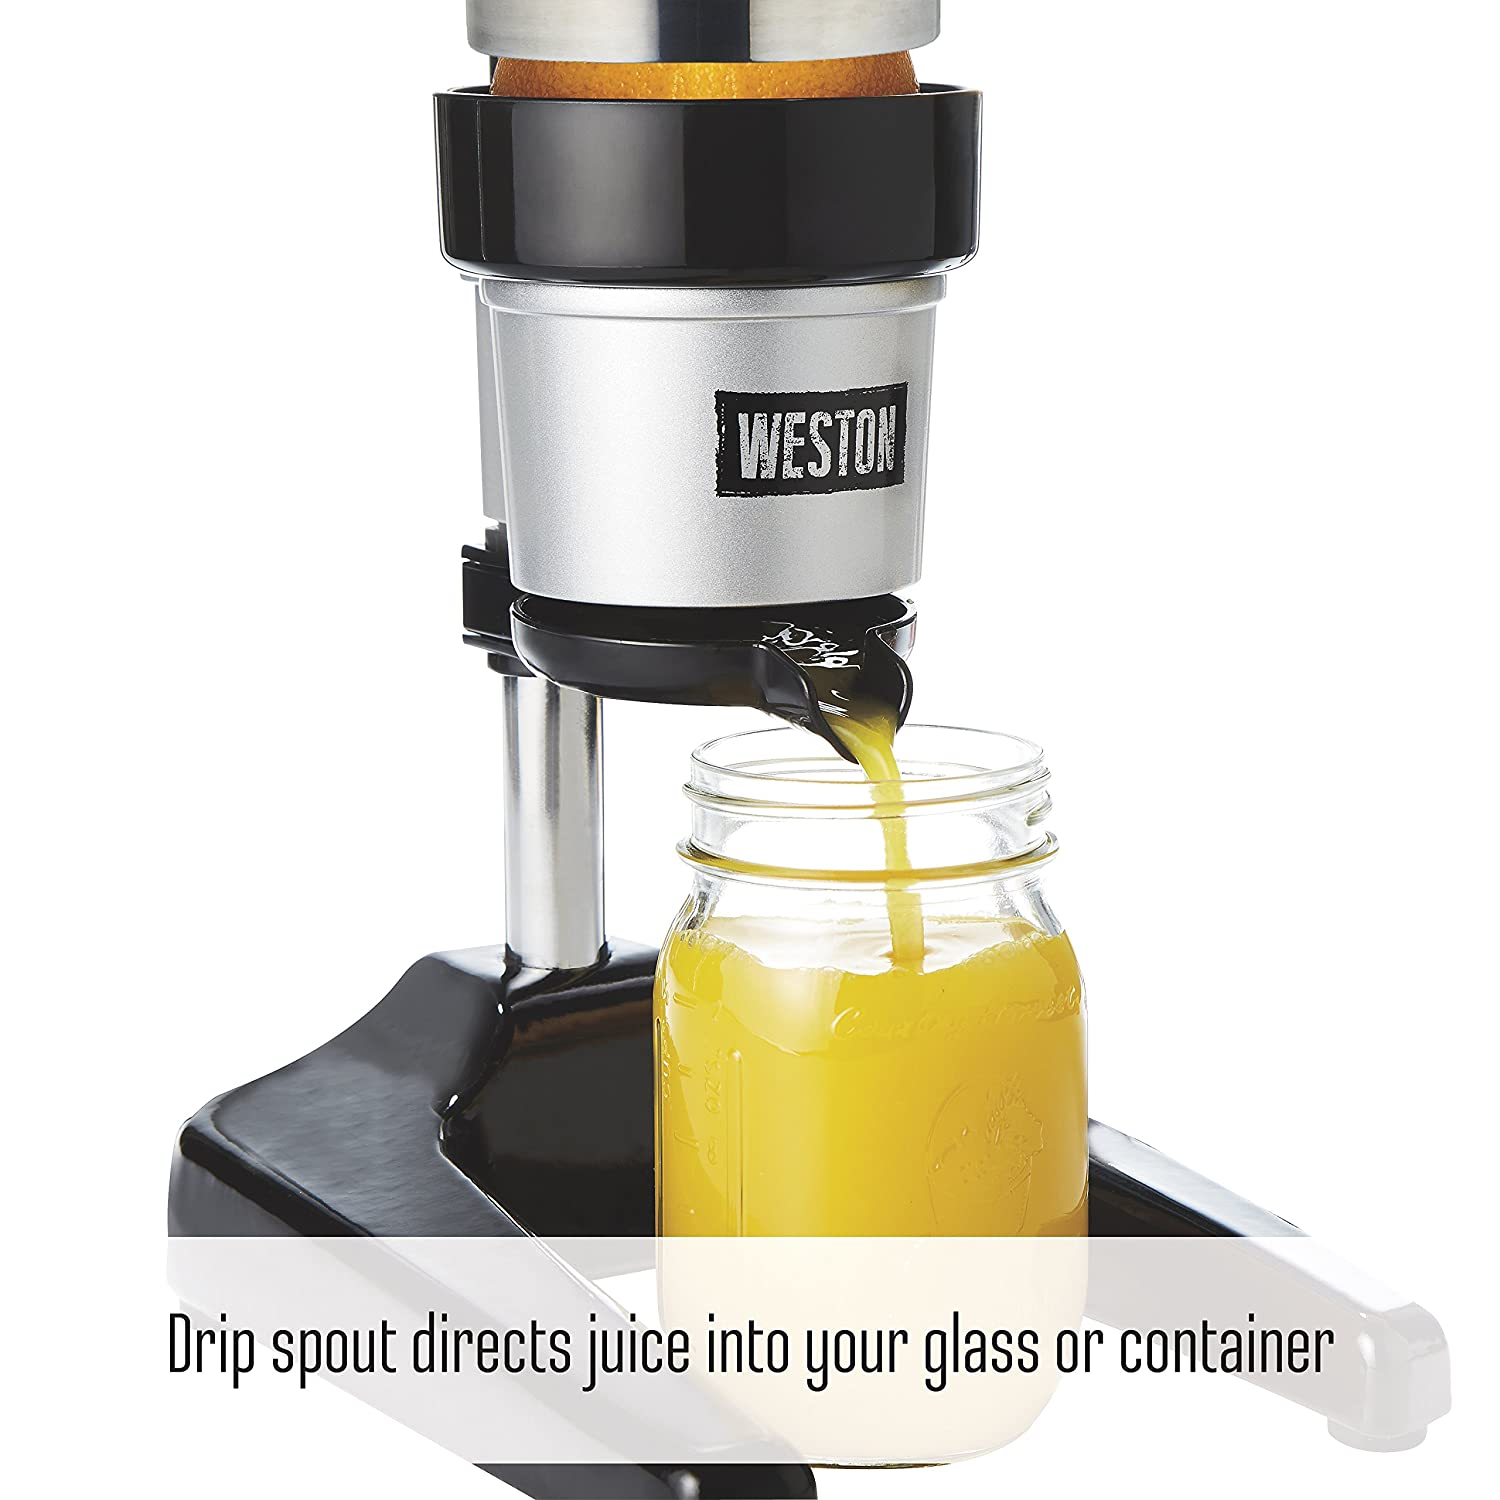 Amazon.com: Weston 66431 Pro Series Citrus Juicer, One, Silver: Kitchen & Dining